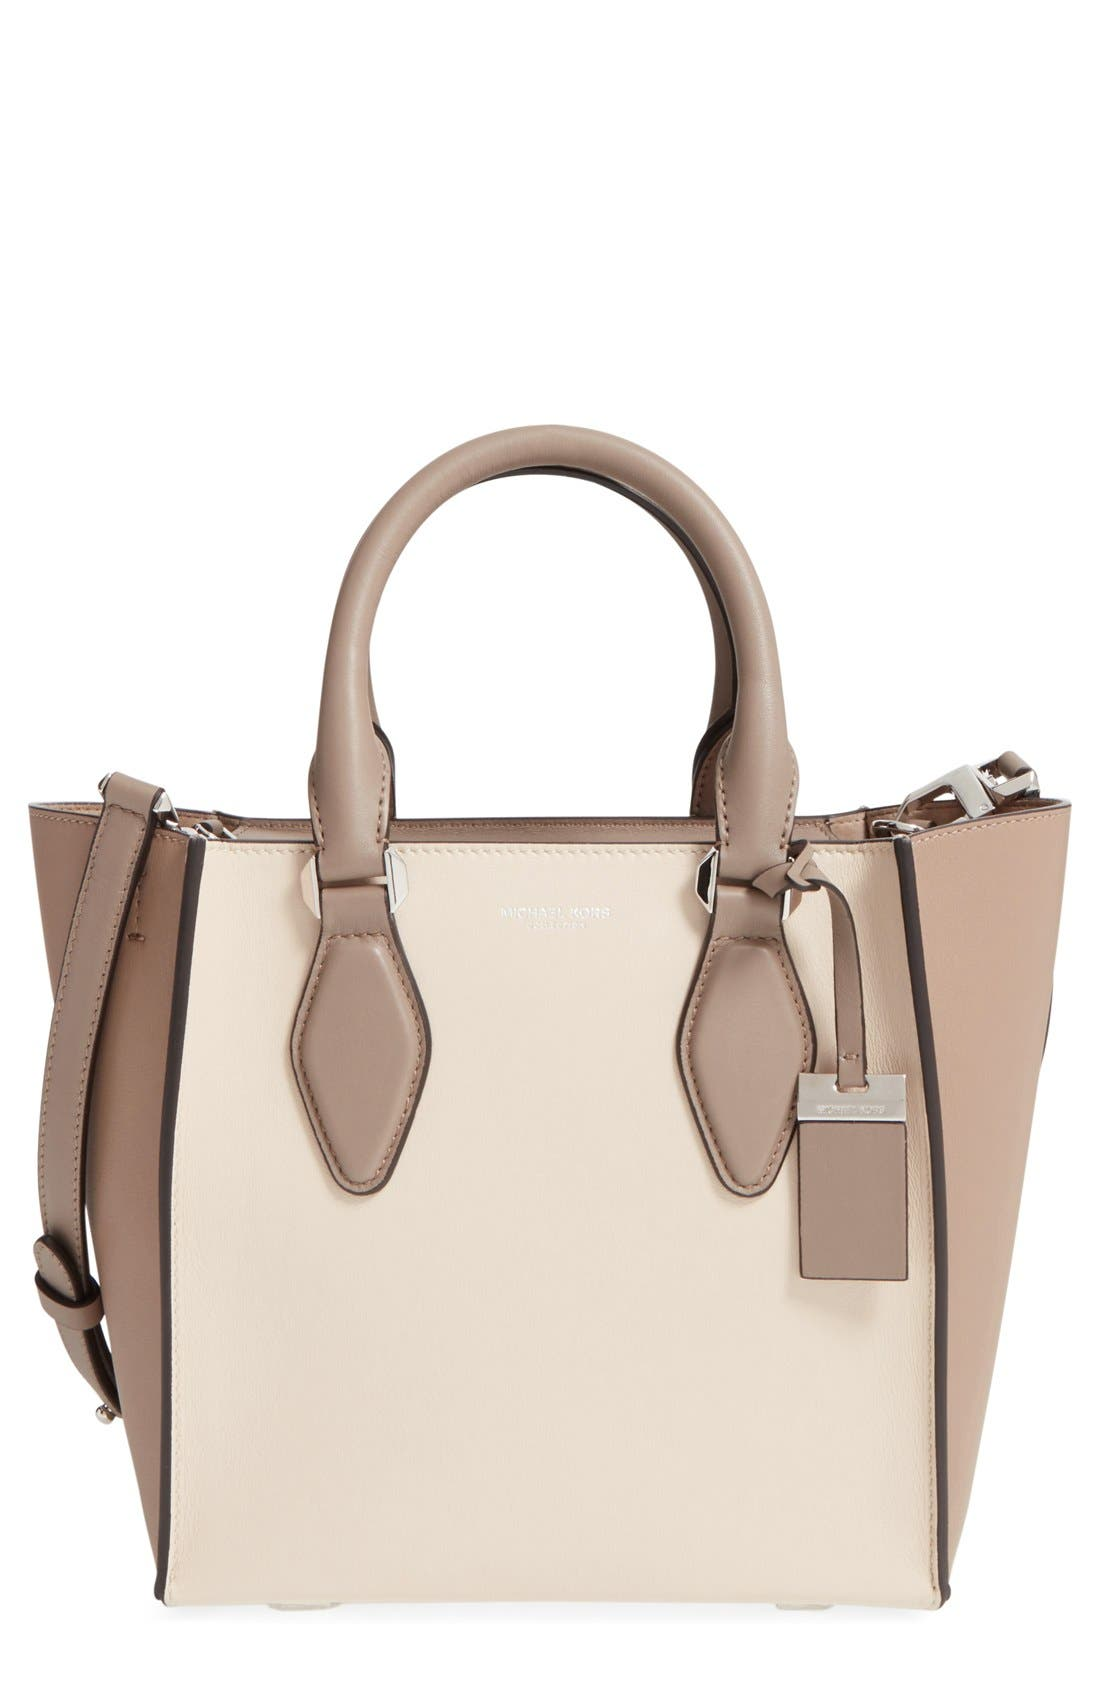 Main Image - Michael Kors 'Small Gracie' Leather Tote